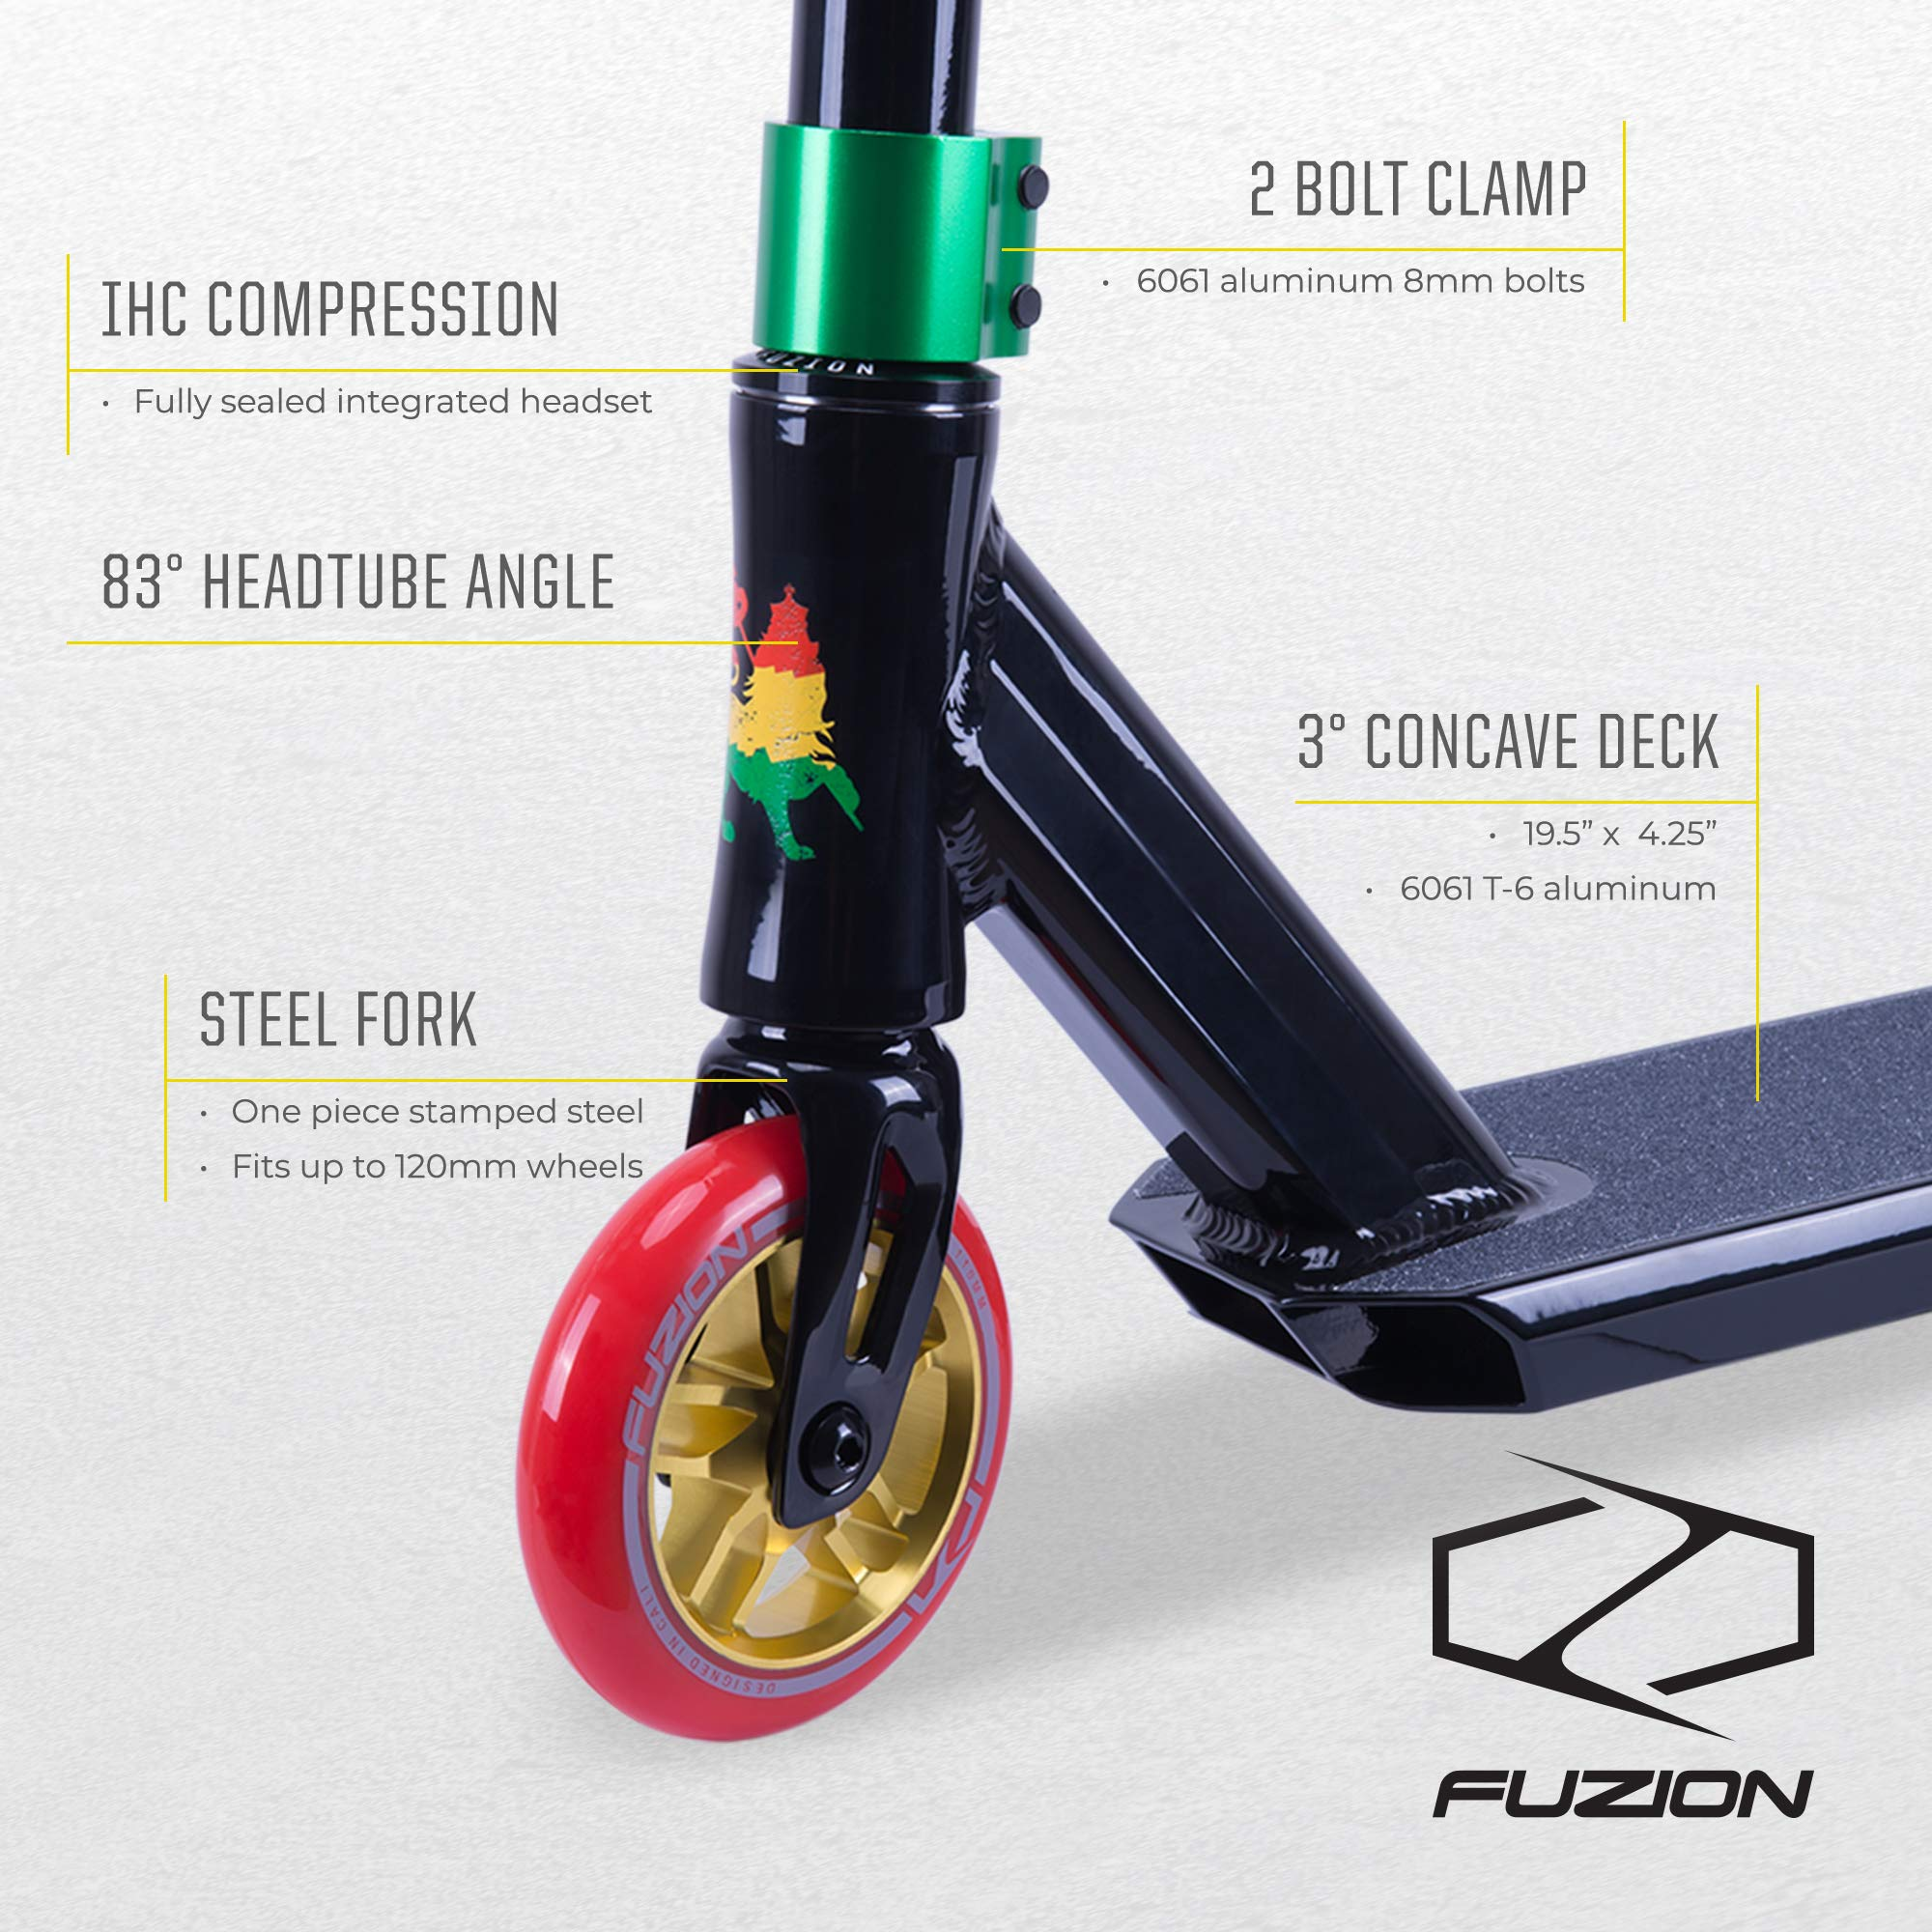 Fuzion Z250 Pro Scooters - Trick Scooter - Intermediate and Beginner Stunt Scooters for Kids 8 Years and Up, Teens and Adults – Durable Freestyle Kick Scooter for Boys and Girls (2019 Rasta) by Fuzion (Image #2)